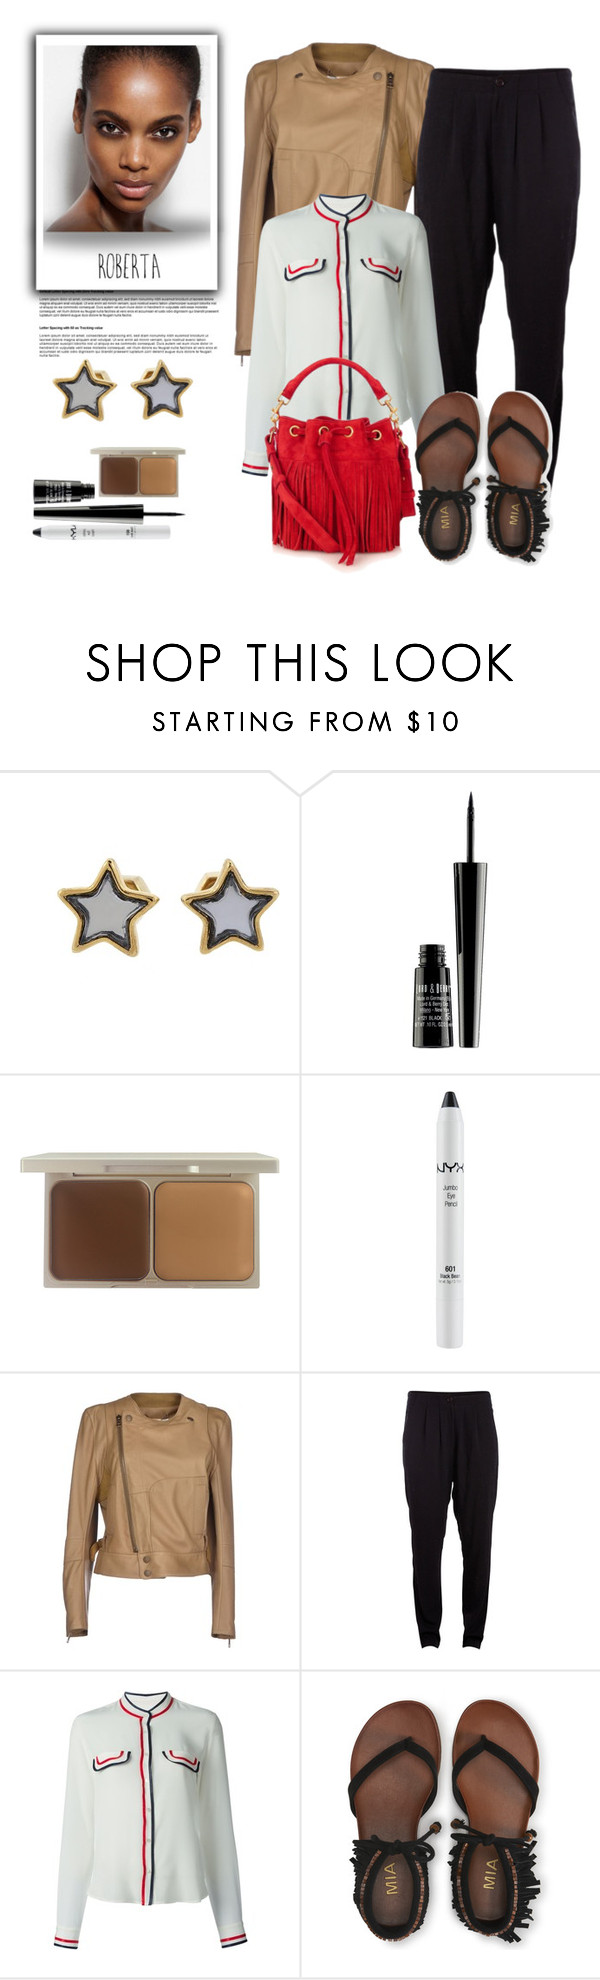 """""""Styling a Harem Panth in elegant way..."""" by gul07 ❤ liked on Polyvore featuring Marc by Marc Jacobs, Lord & Berry, Stila, NYX, Chloé, Pieces, Mauro Grifoni, Aéropostale and Yves Saint Laurent"""